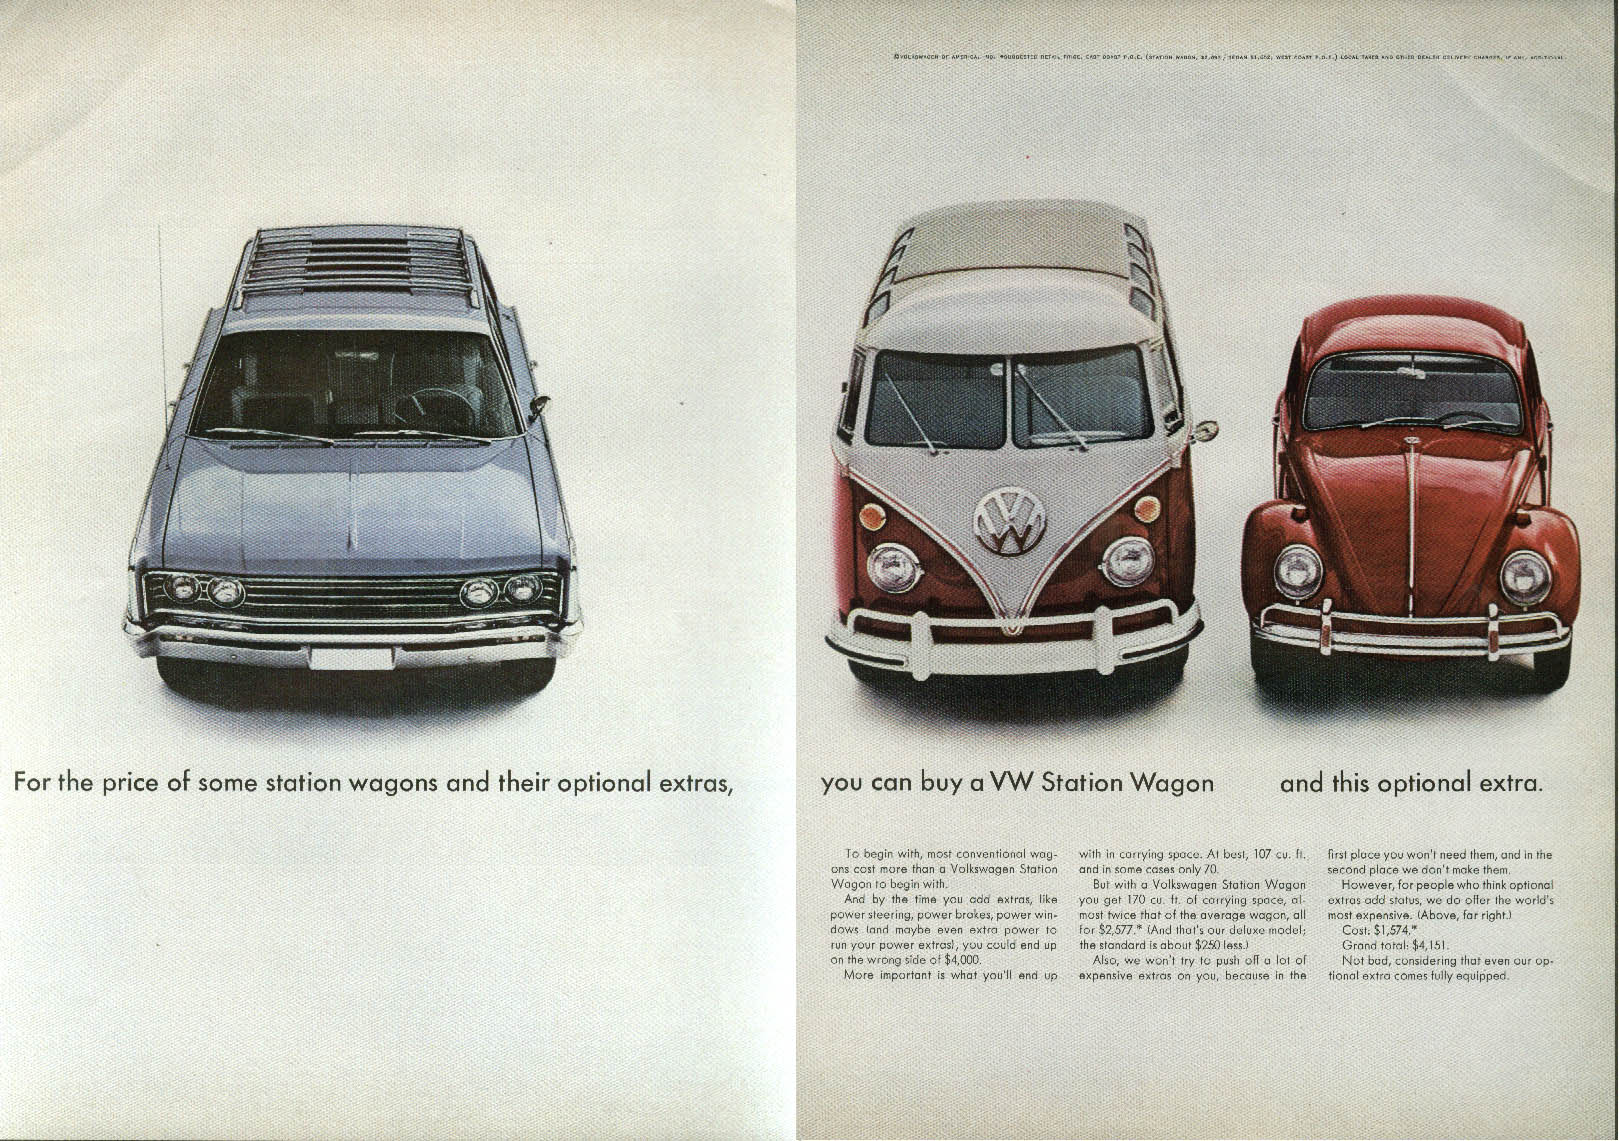 For the price of this, buy a Volkswagen Station Wagon w/ this Option ad 1966